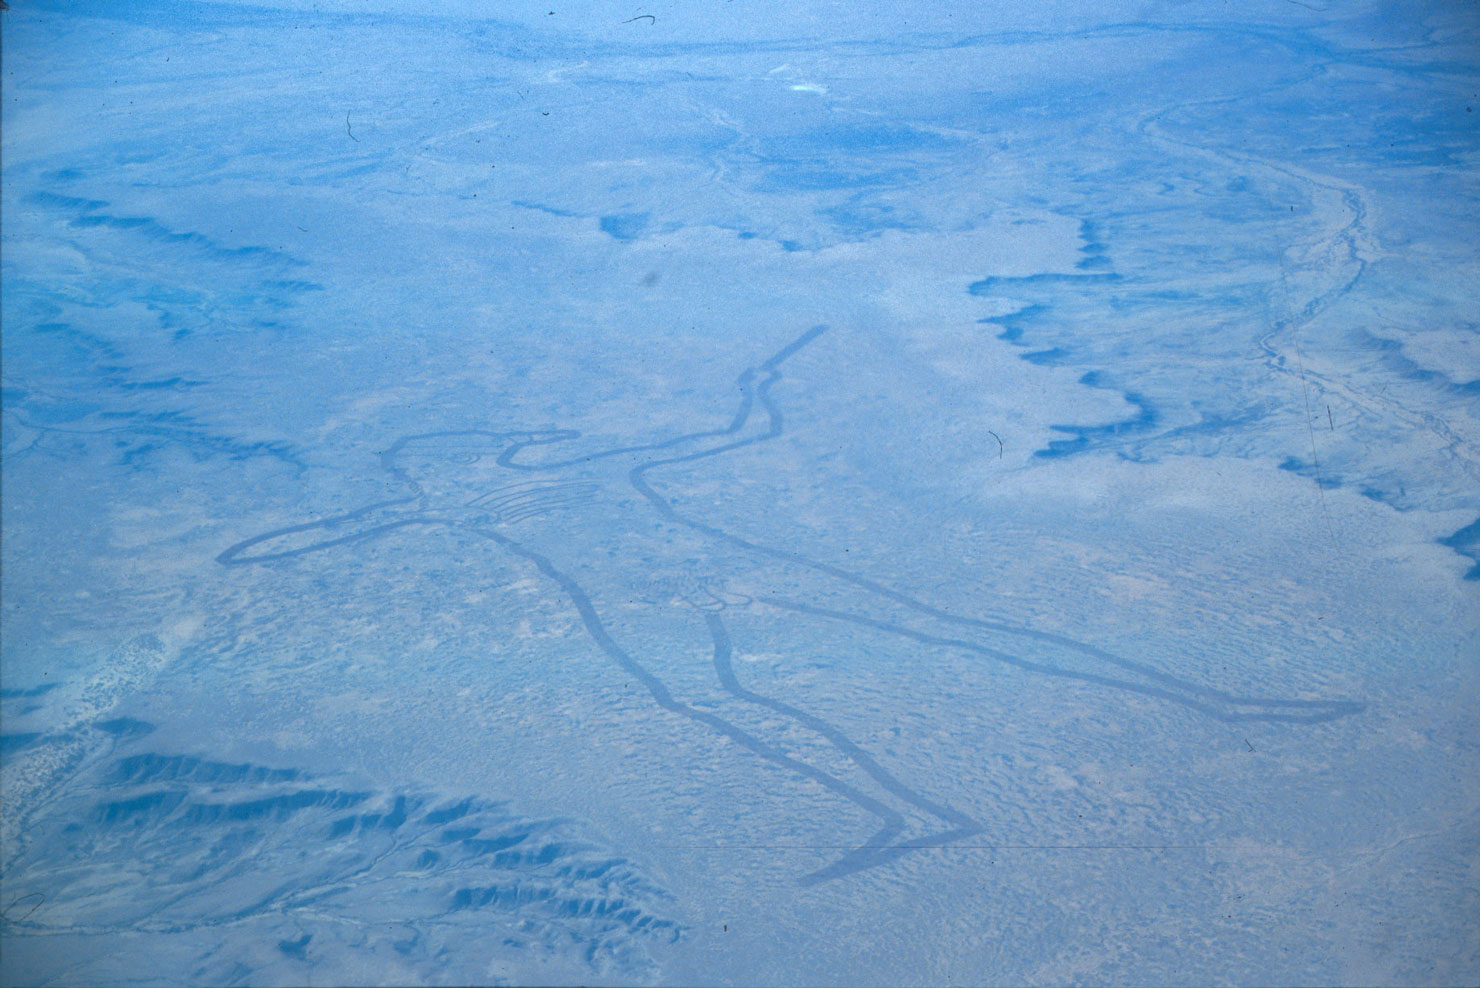 The original Marree Man from the air when it was created in 1998 - Image Credit Peter Campbell via Wikipedia